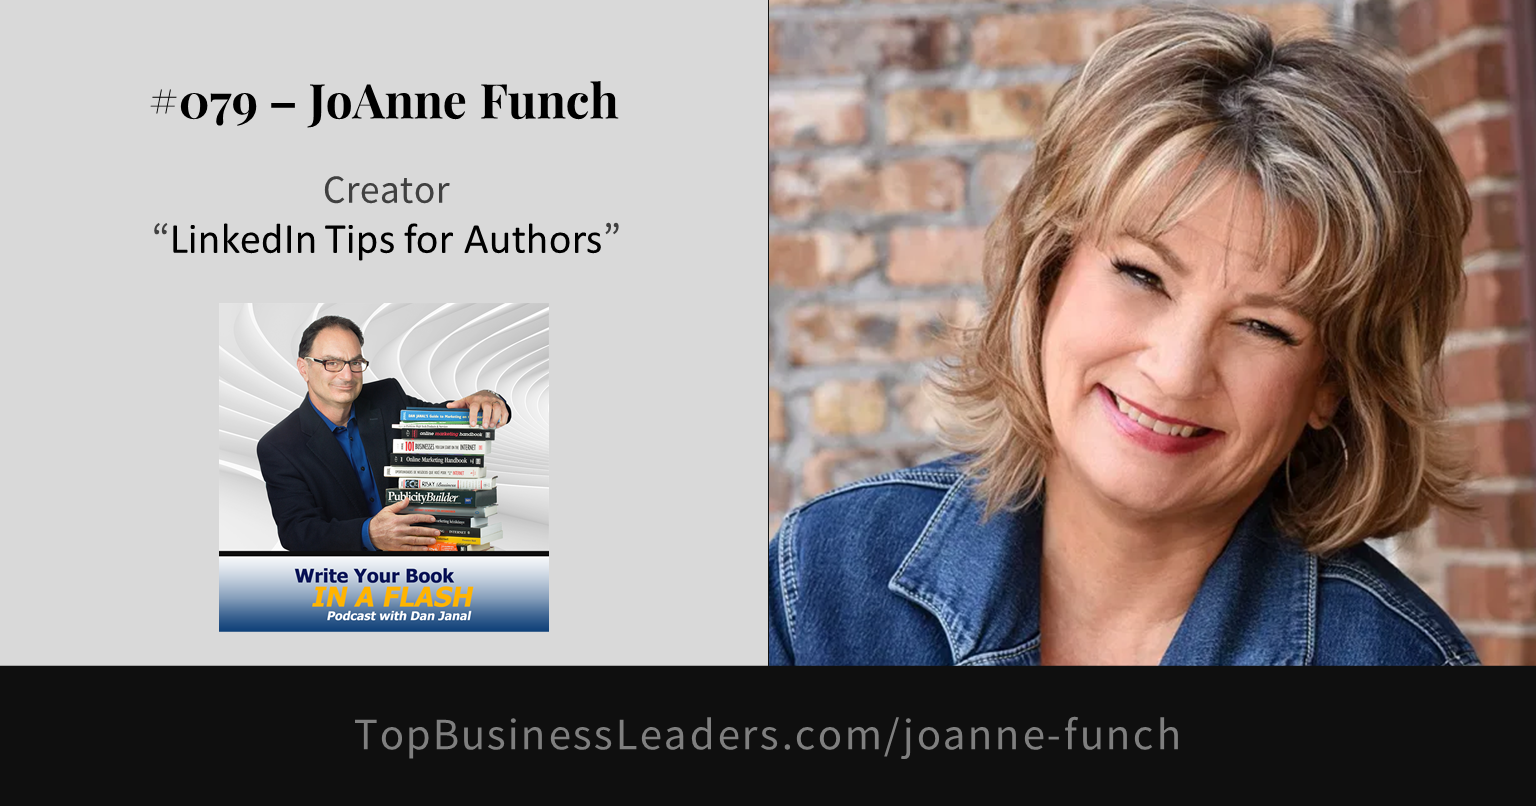 joanne-funch-topic-linkedin-tips-for-authors